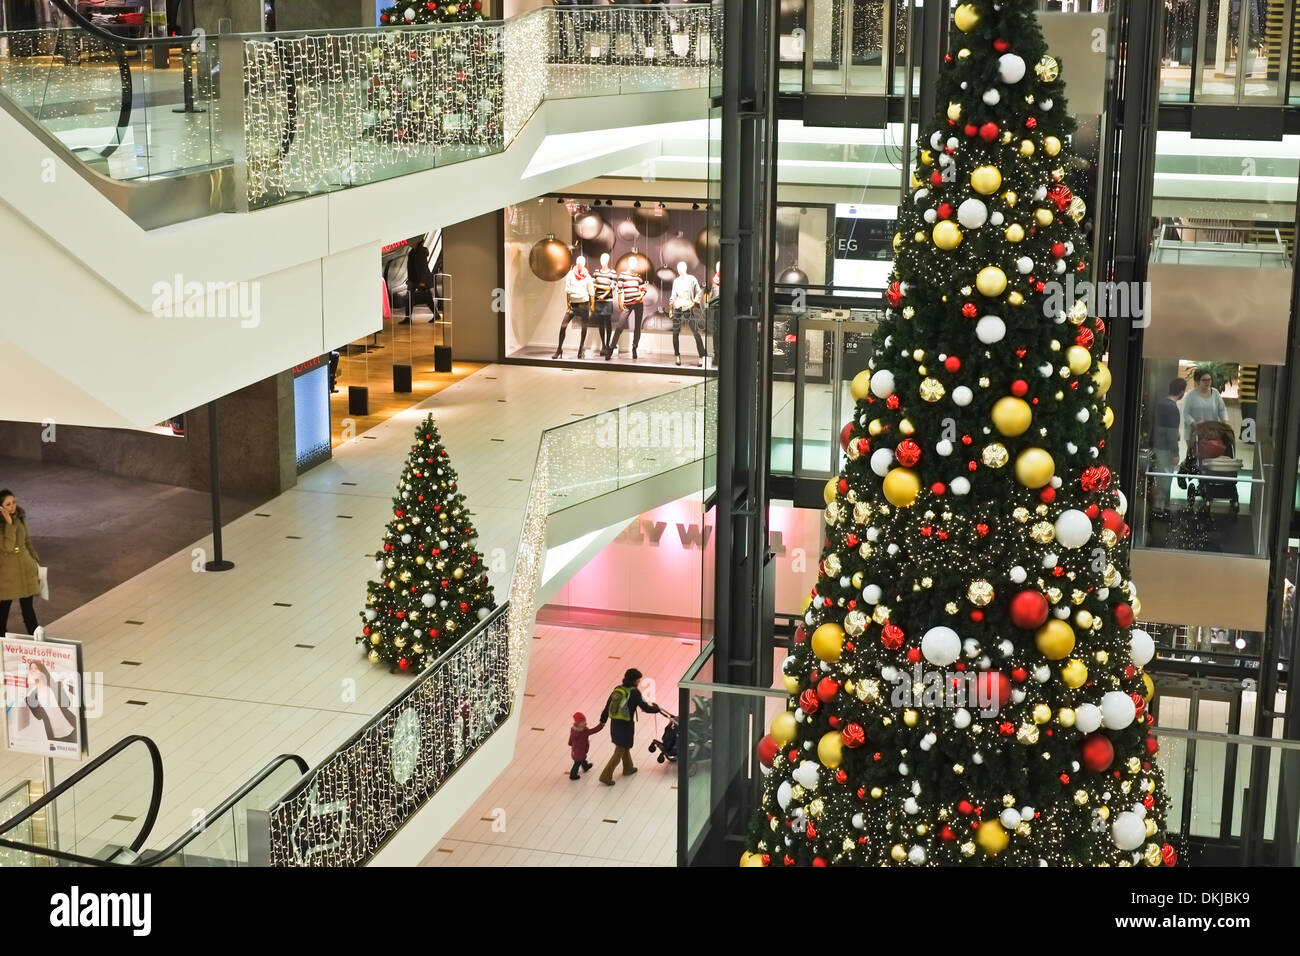 shopping mall center during christmas time boulevard berlin stock photo royalty free image. Black Bedroom Furniture Sets. Home Design Ideas